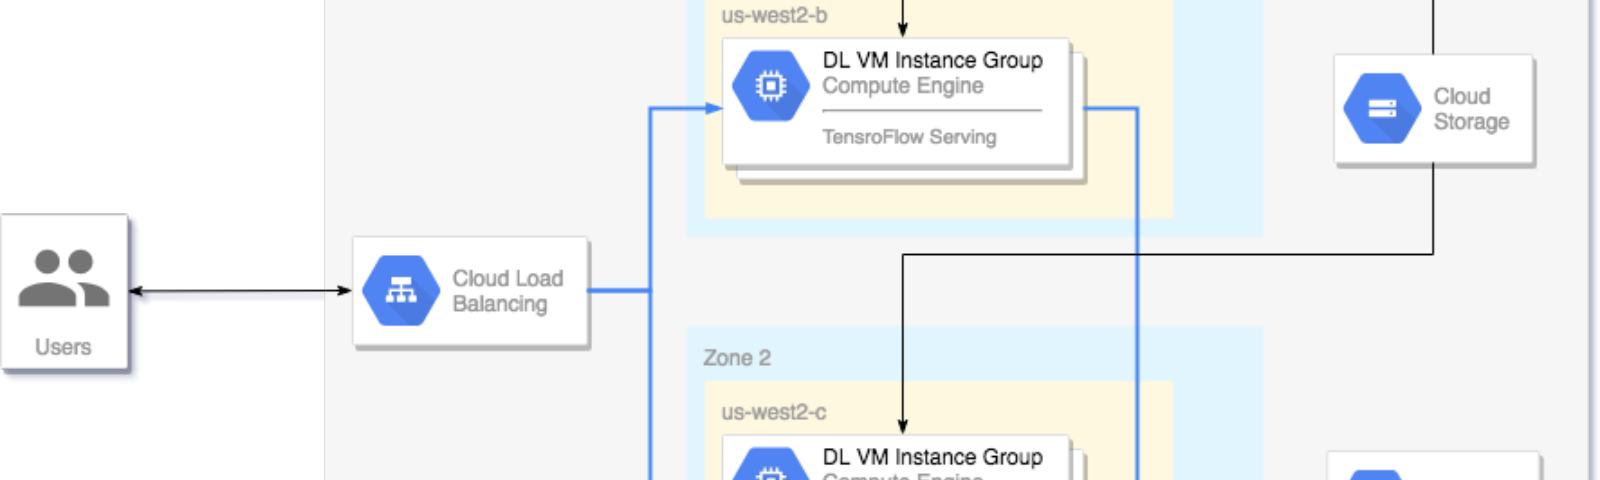 Inference On GPUs At Scale With Nvidia TensorRT5 On Google Compute